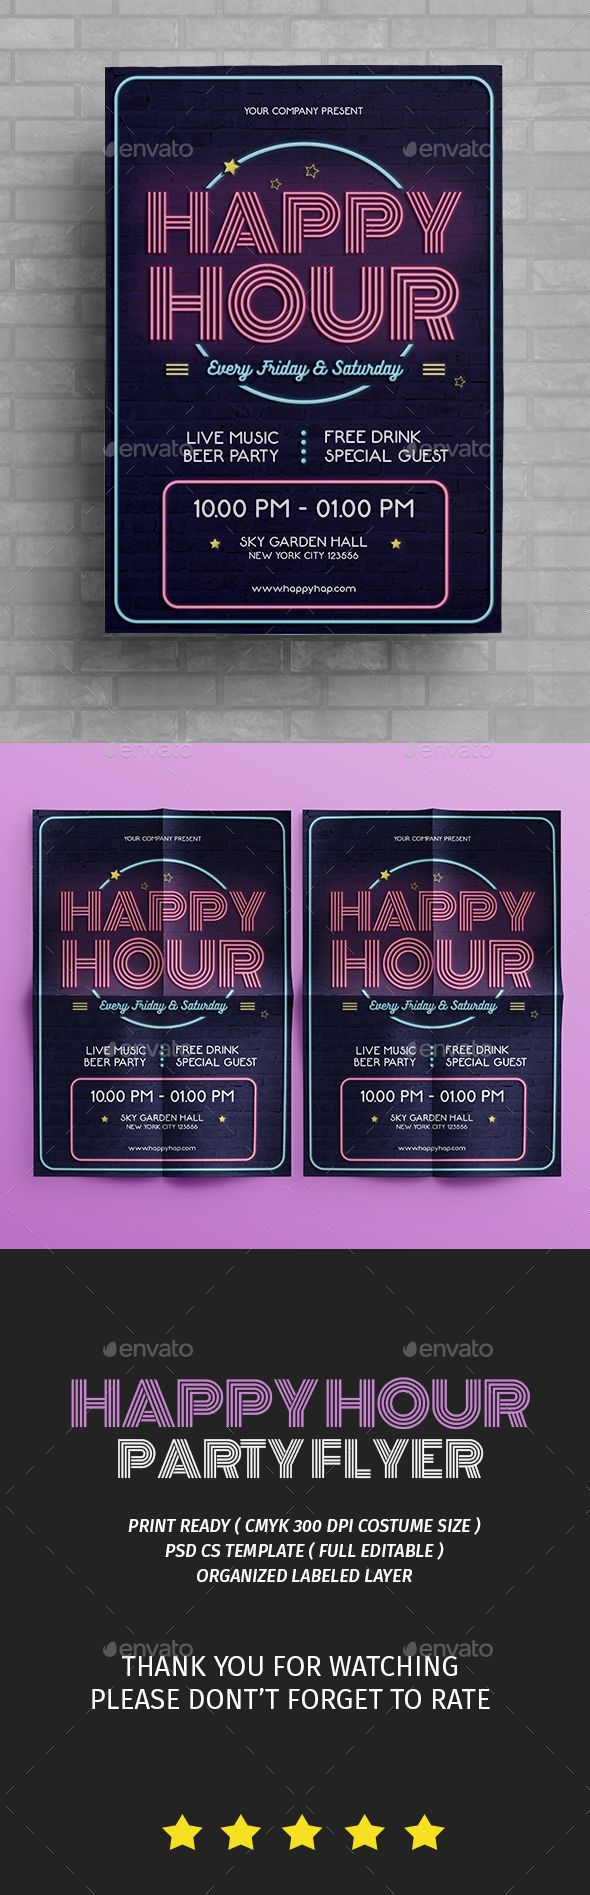 Happy Hour Flyer — Photoshop PSD #retro flyer #happy hour • Available here → https://graphicriver.net/item/happy-hour-flyer/16479868?ref=pxcr